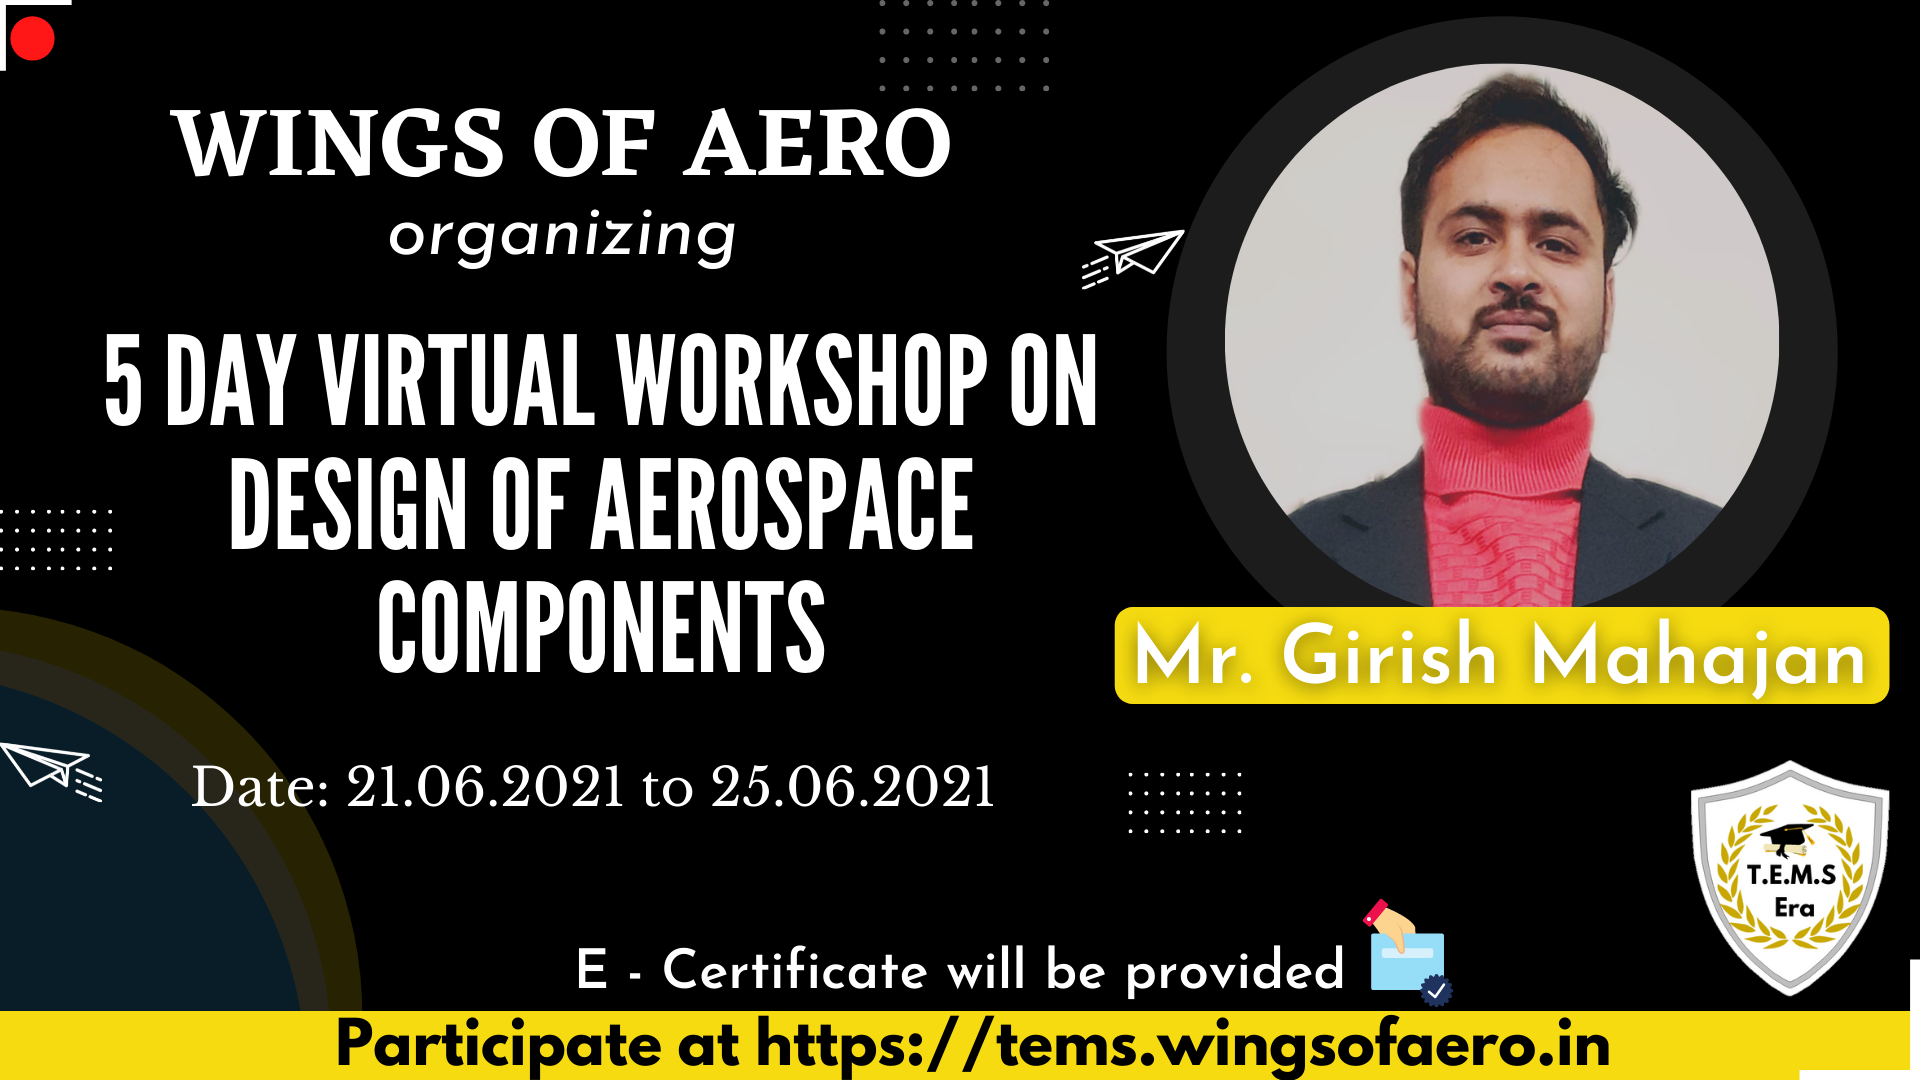 5 Day Virtual Workshop on Design of Aerospace Components